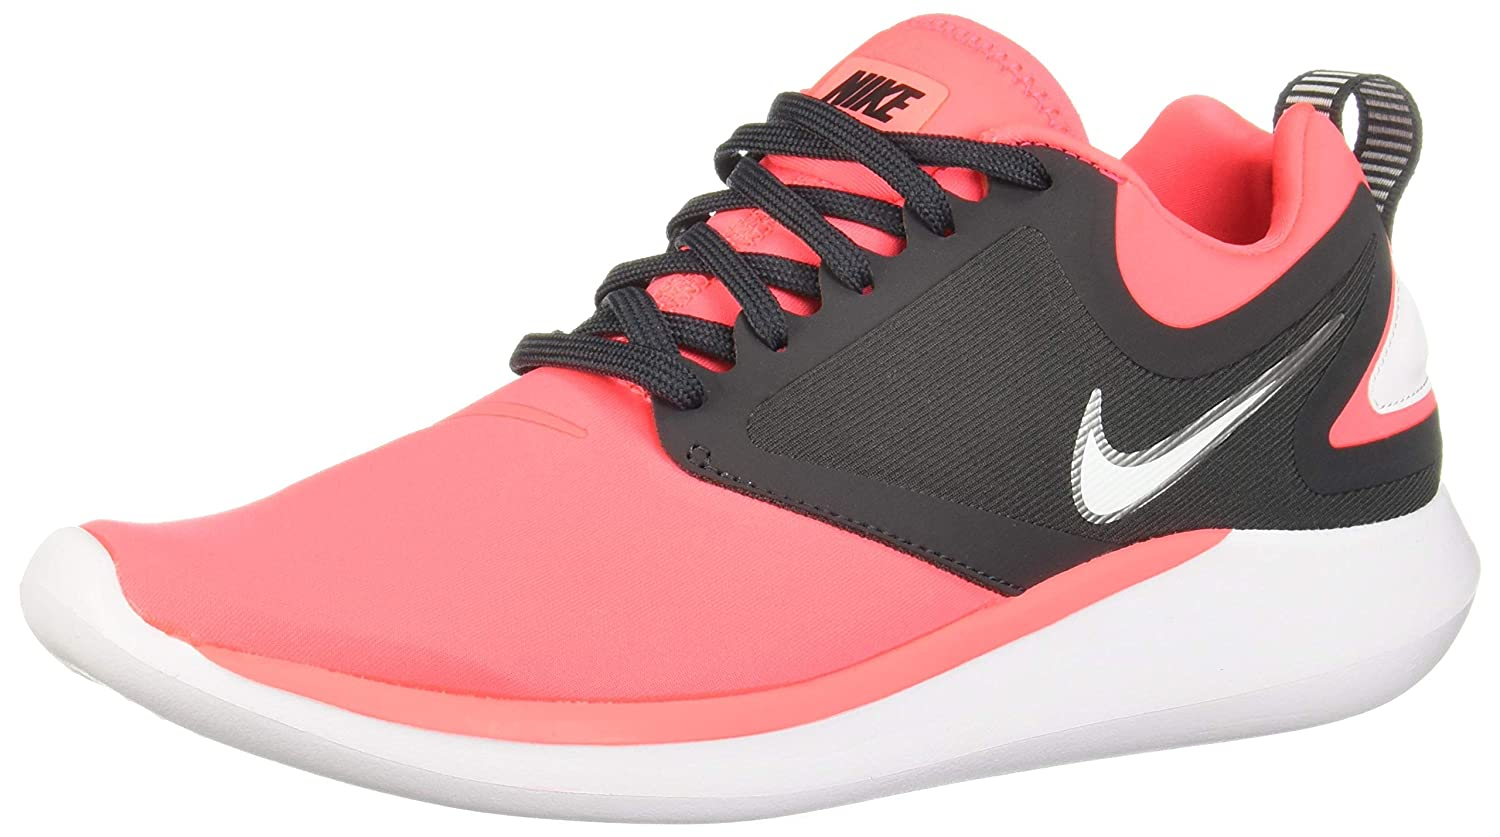 NIKE Wmns Lunarsolo, Scarpe Running Donna Multicolore Hot Punch / White Ant 604)